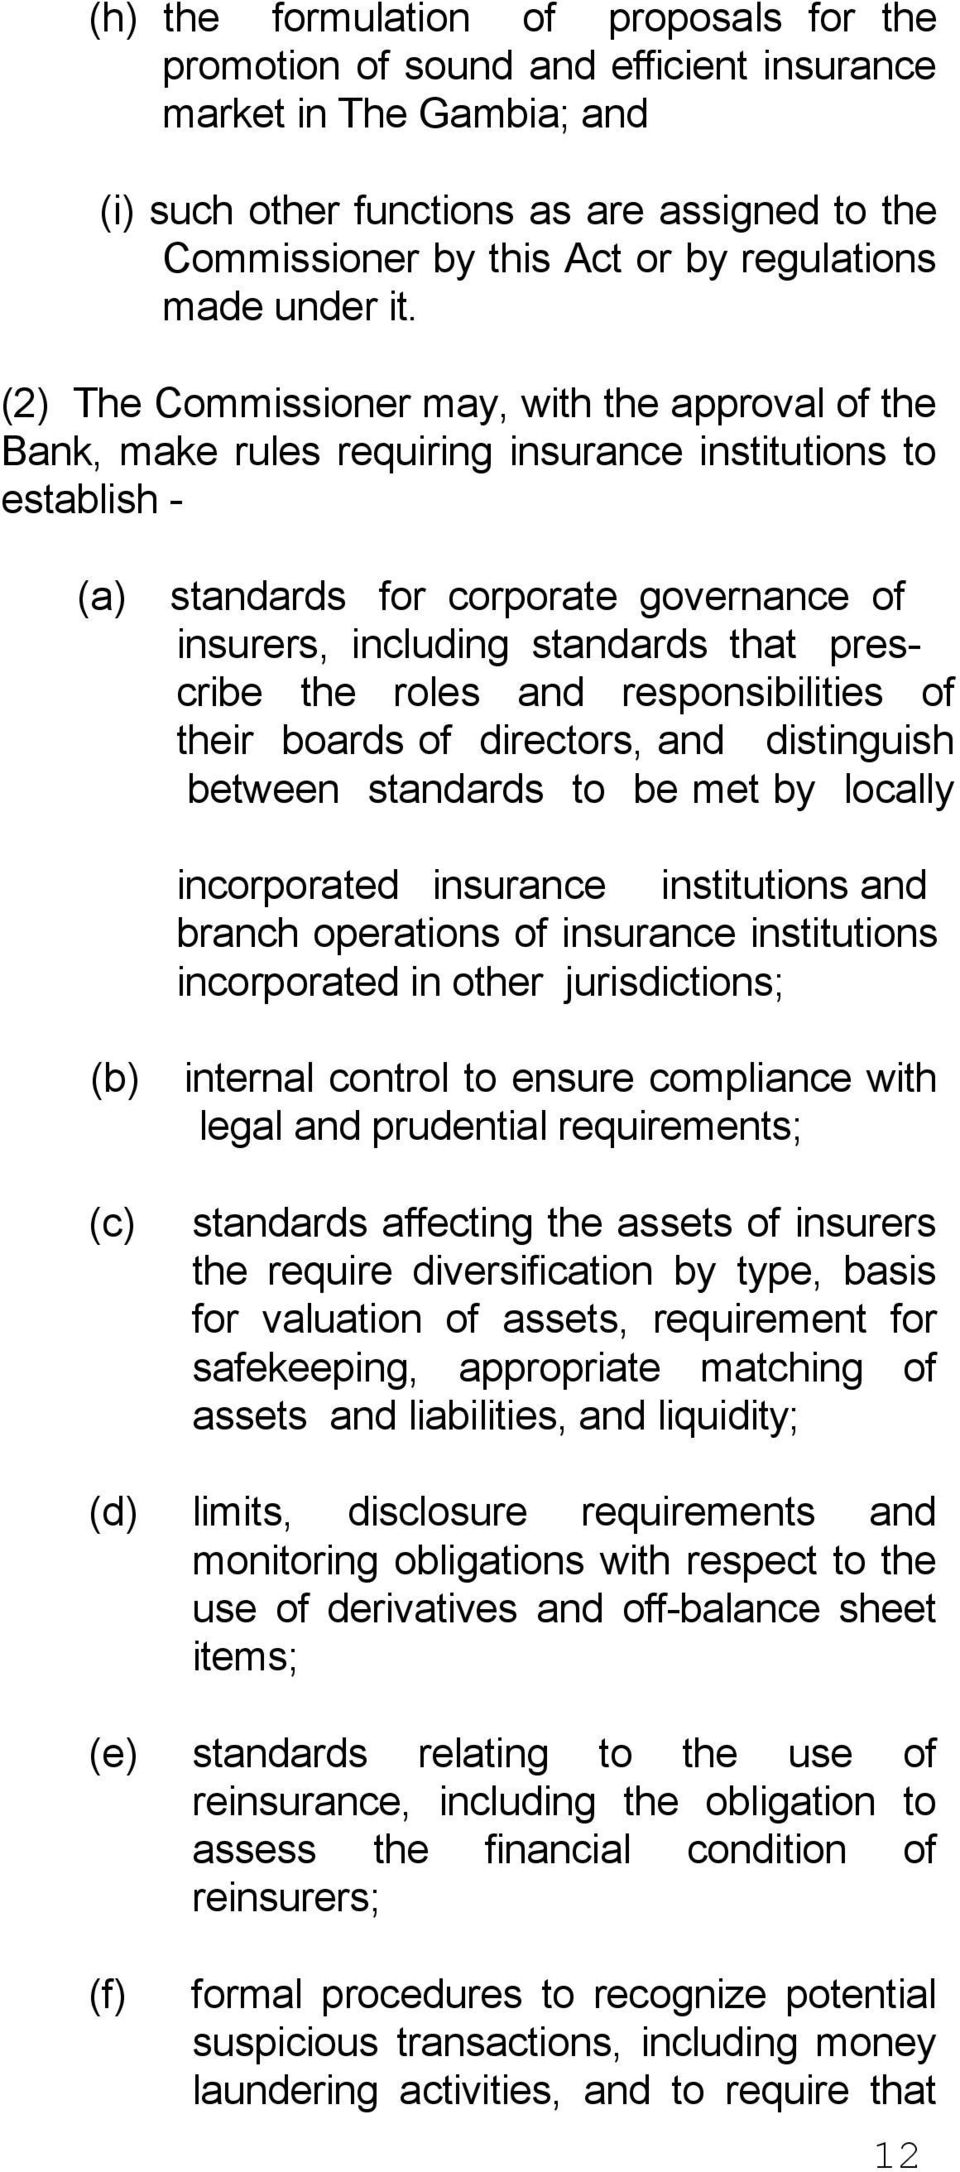 (2) The Commissioner may, with the approval of the Bank, make rules requiring insurance institutions to establish - (a) standards for corporate governance of insurers, including standards that